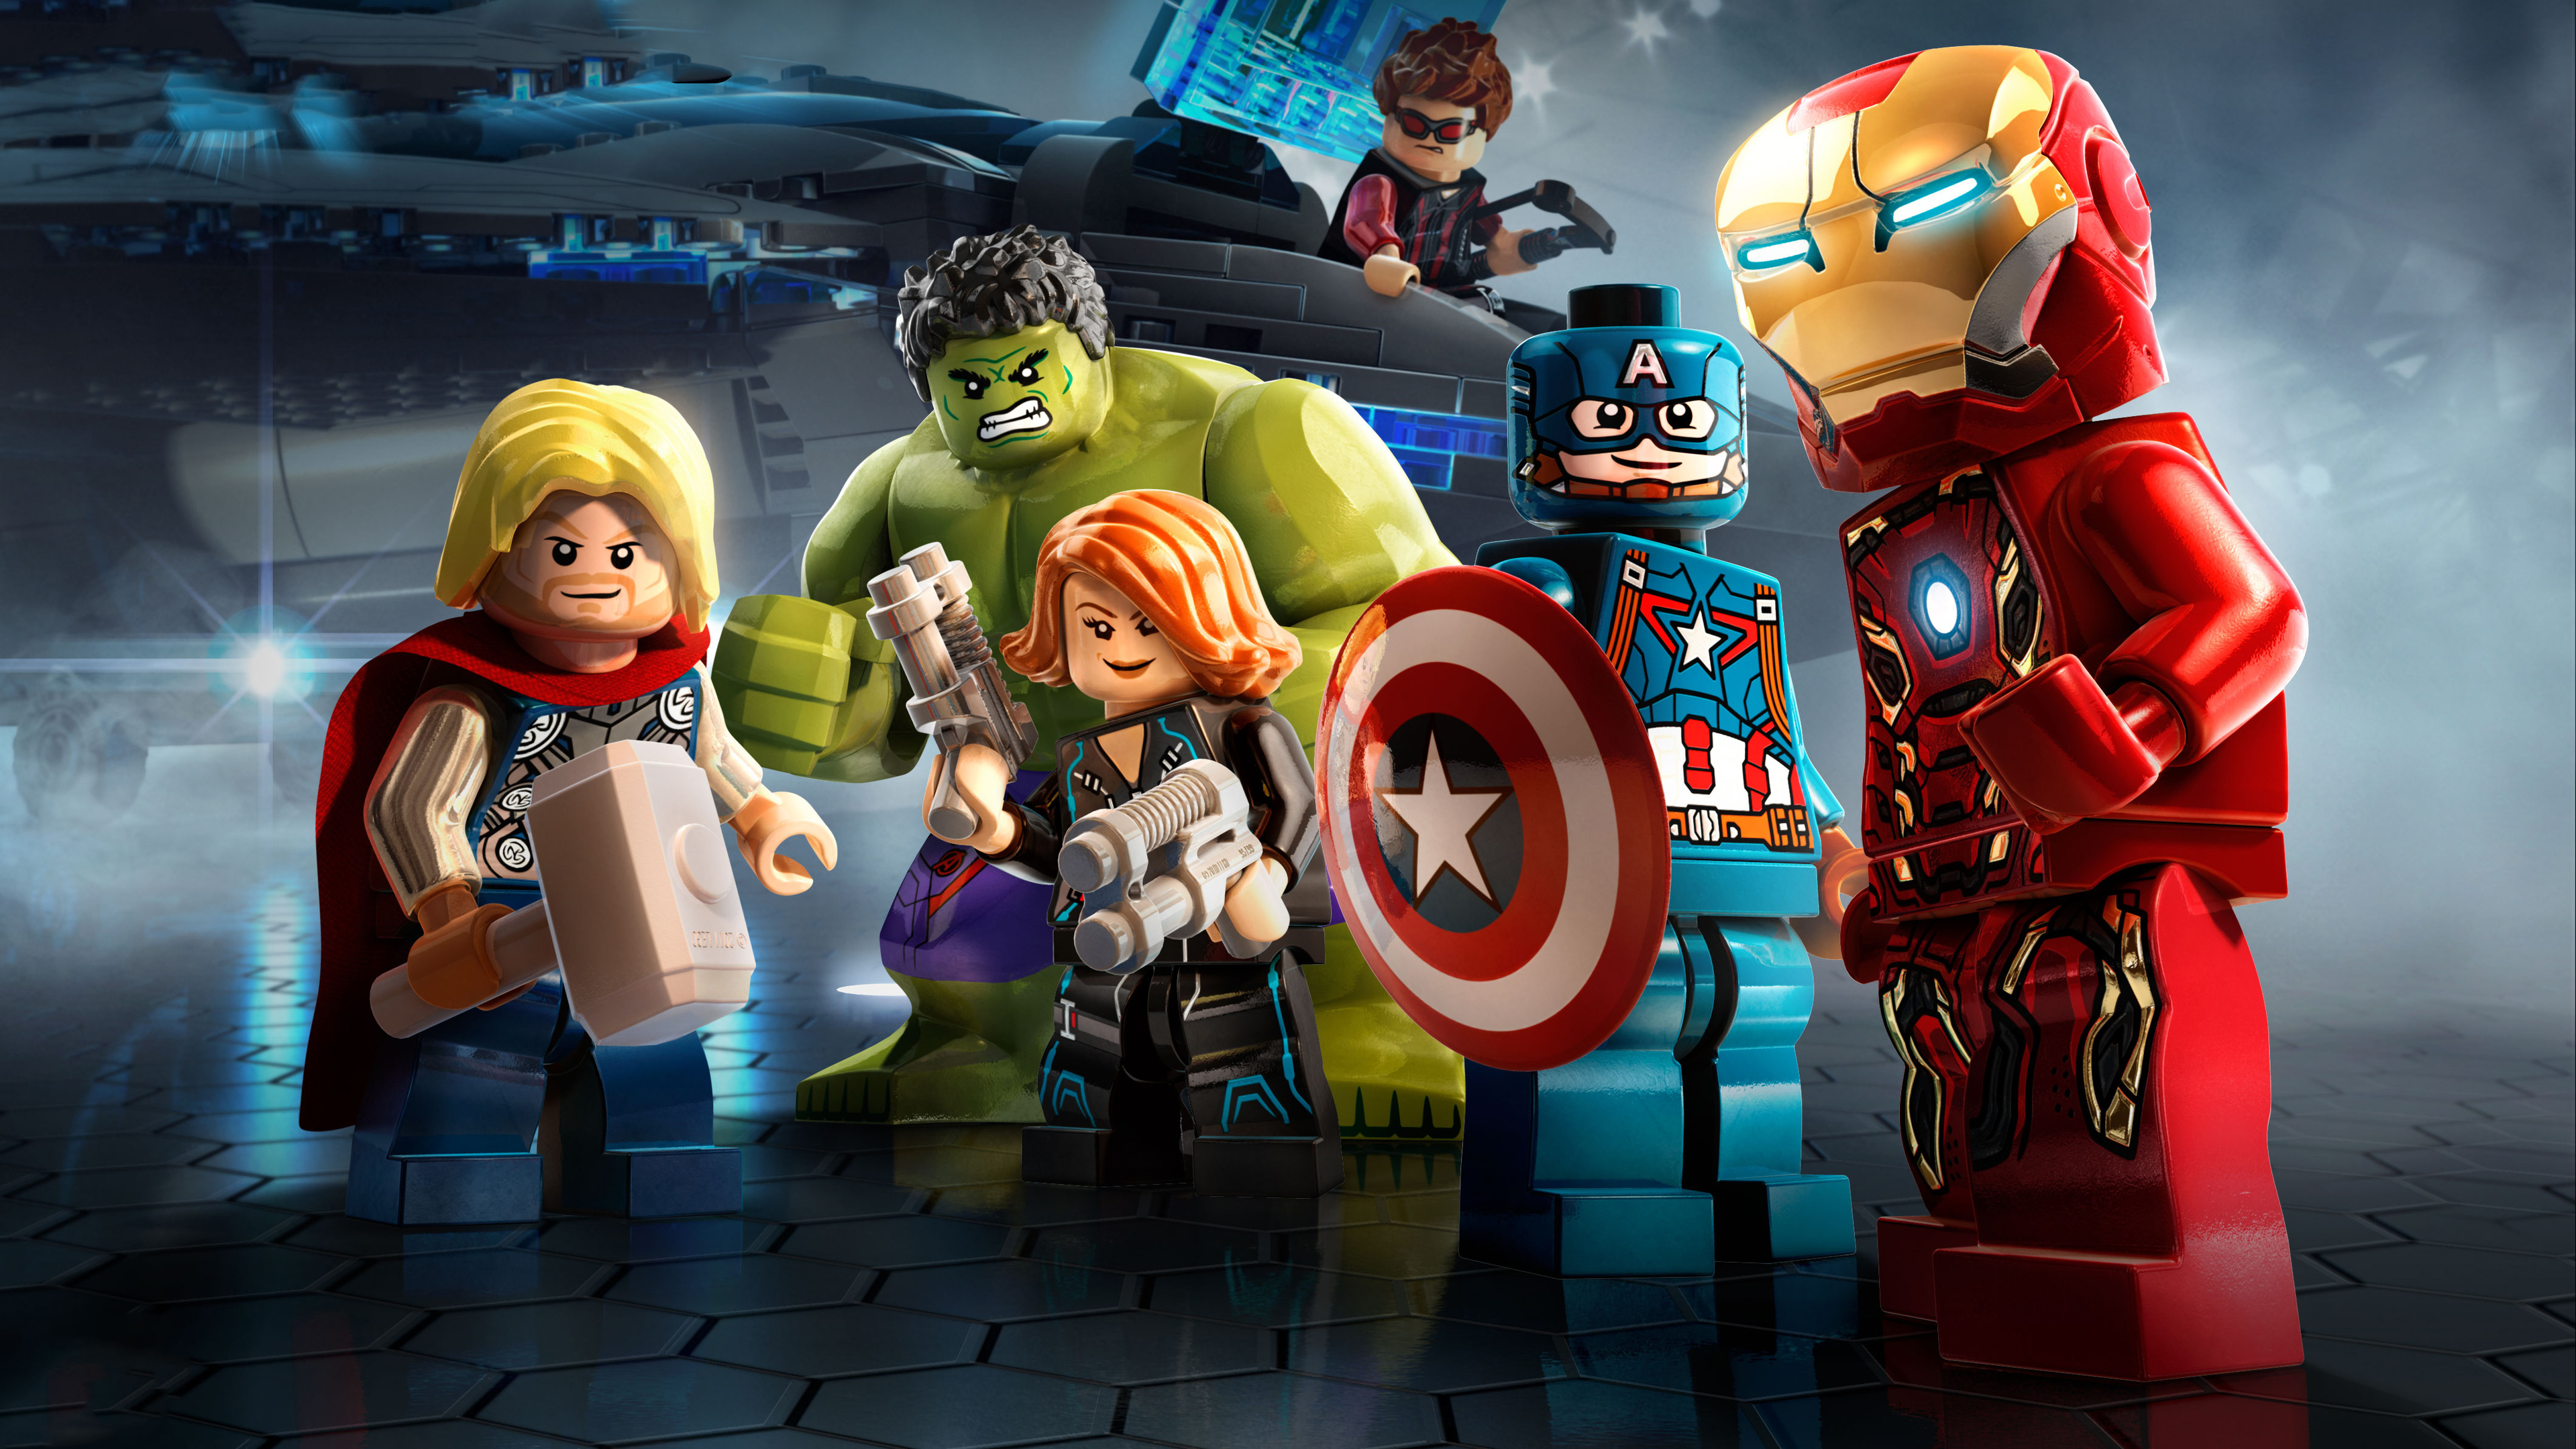 Wallpaper 4k Marvel Avengers Lego 4k 4k Wallpapers Avengers Wallpapers Hd Wallpapers Lego Wallpapers Superheroes Wallpapers